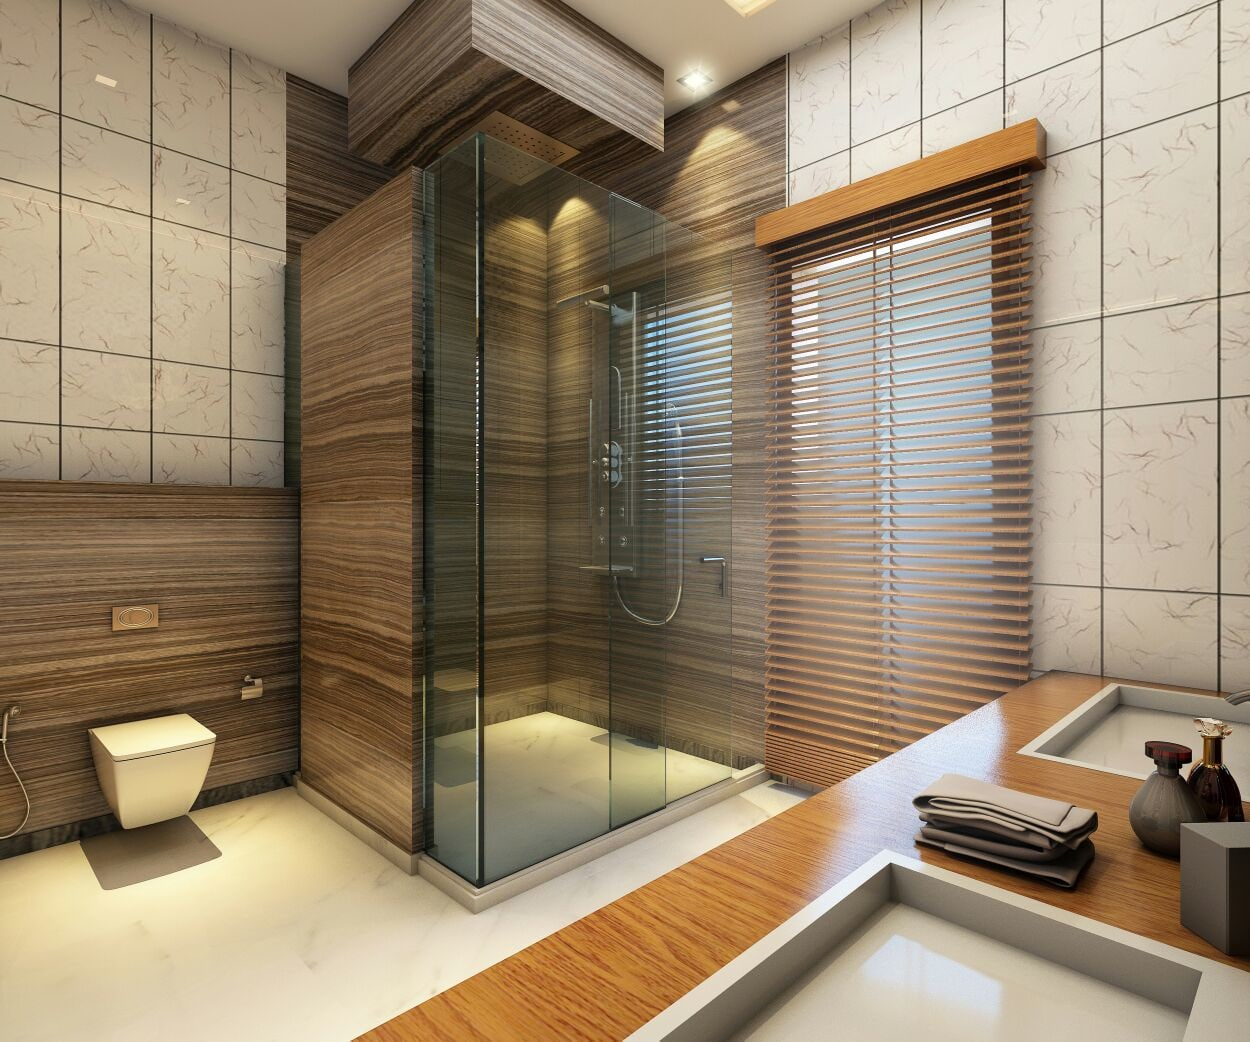 Bathroom With Wooden Work And Glass Enclosure by Amit Sharma Bathroom Modern | Interior Design Photos & Ideas